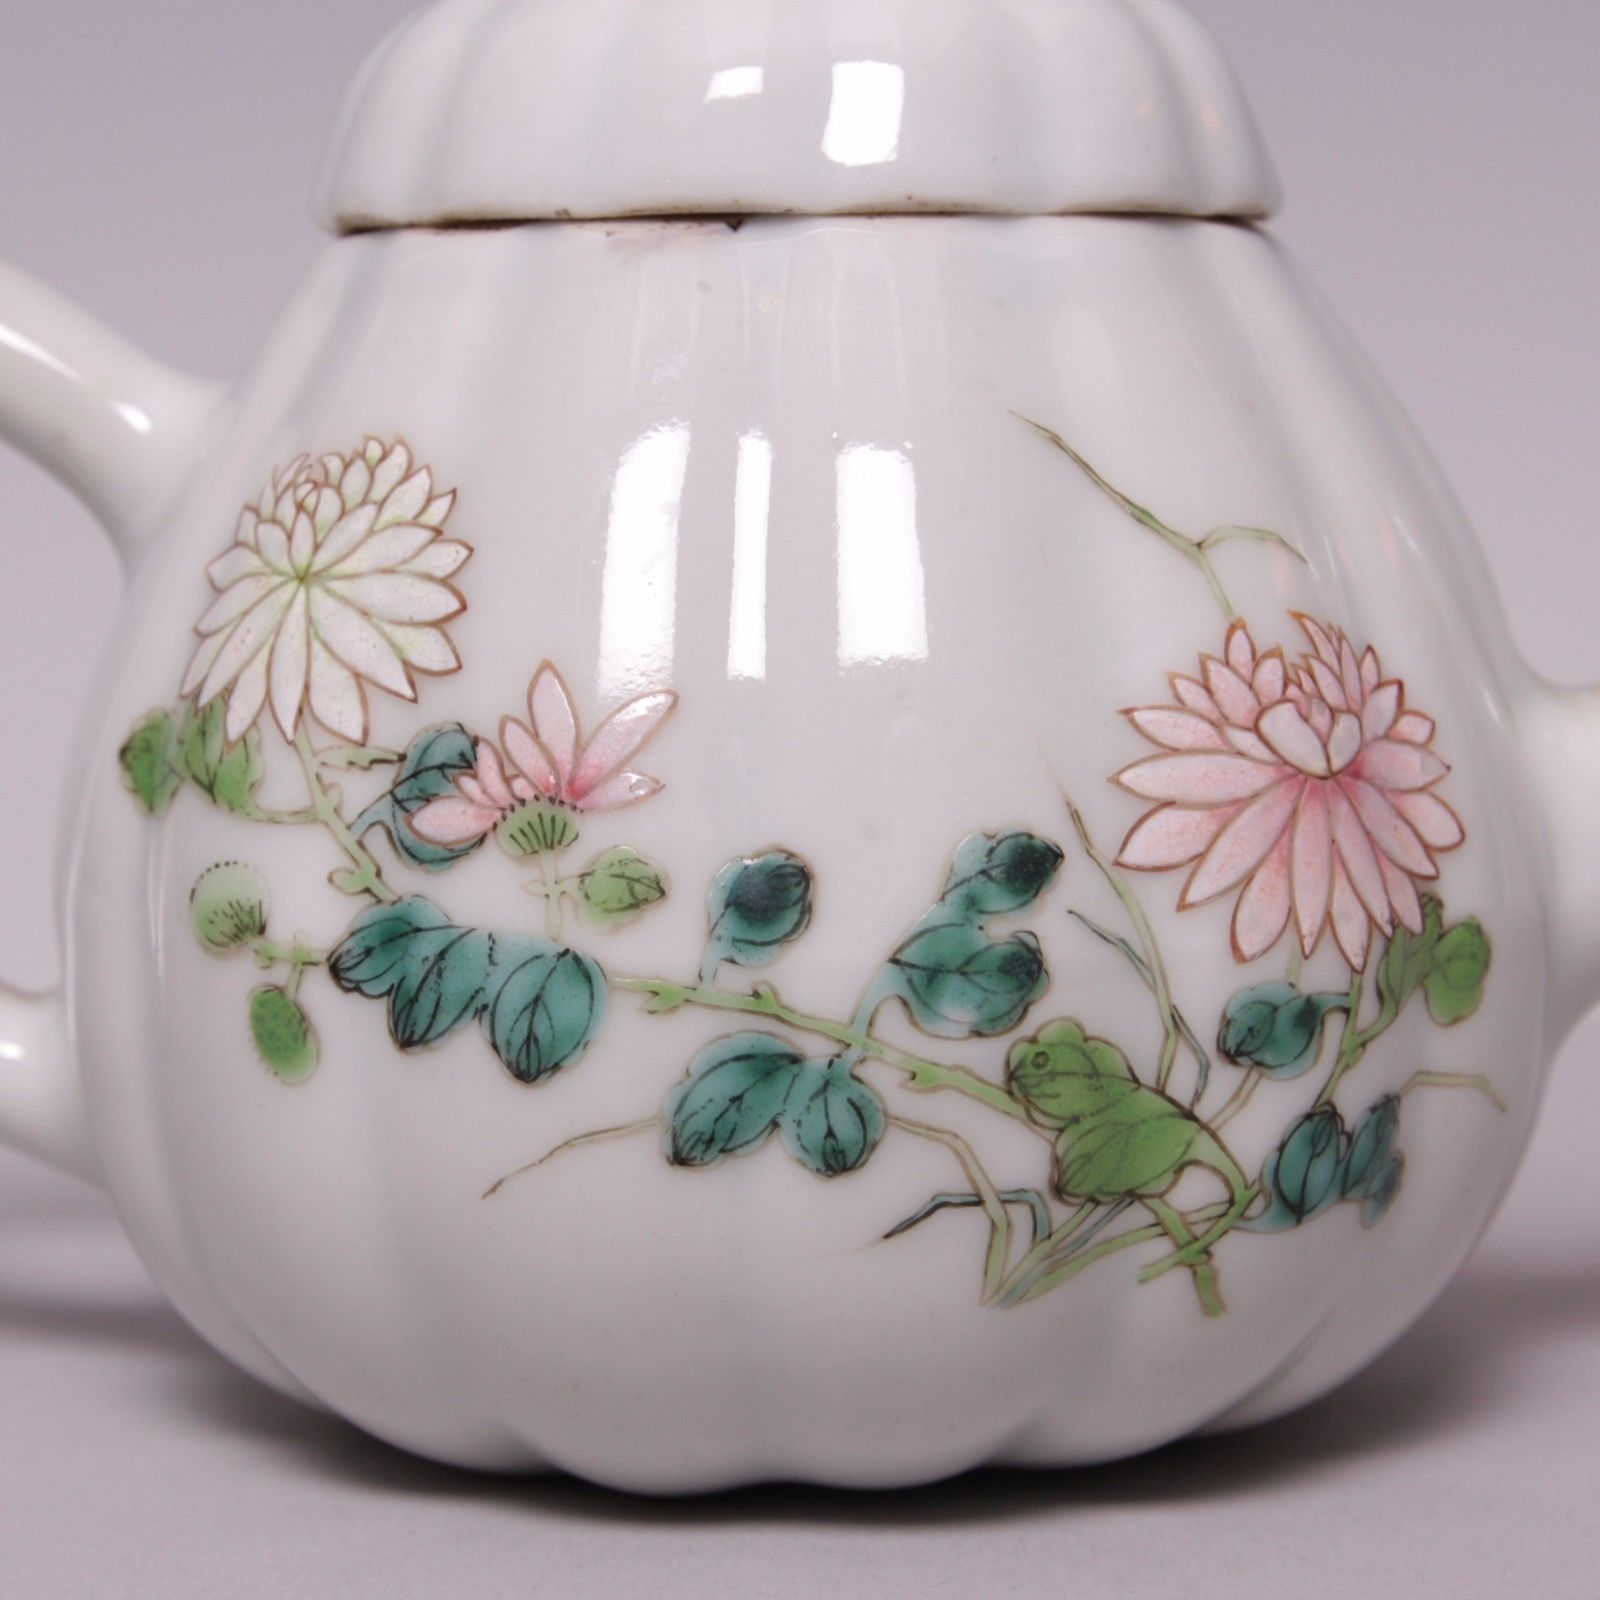 Chinese Porcelain Melon Shaped Famille Rose Teapot 18th Ct Yongzheng Antique Chinese